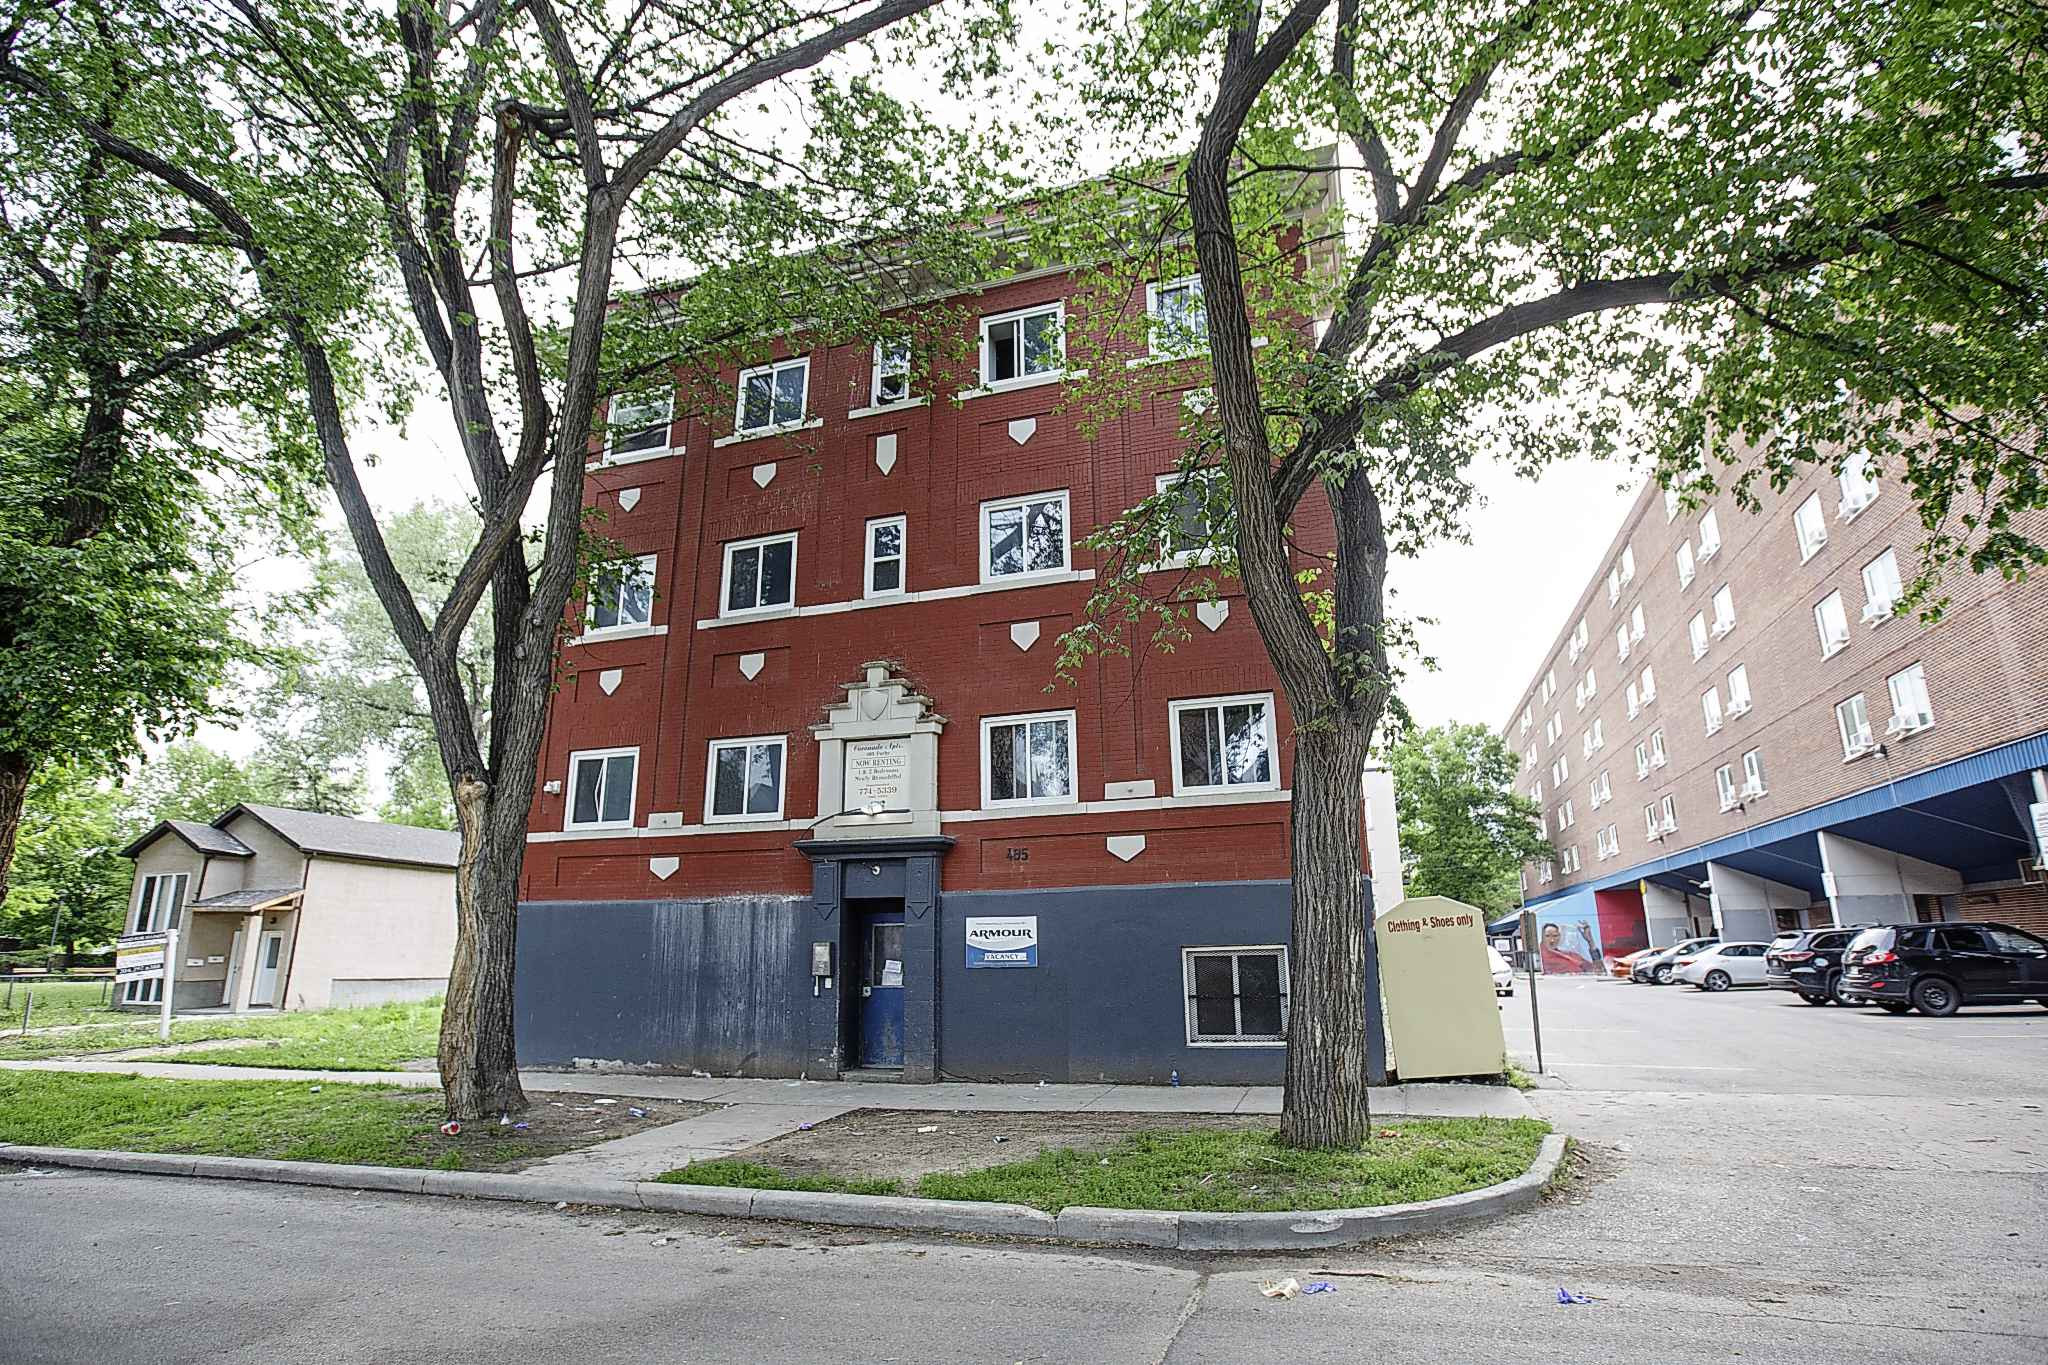 We should appreciate and work to protect Winnipeg's shoebox apartment buildings, a unique part of the city's history and an important neighbourhood building block. (Mike Deal / Winnipeg Free Press files)